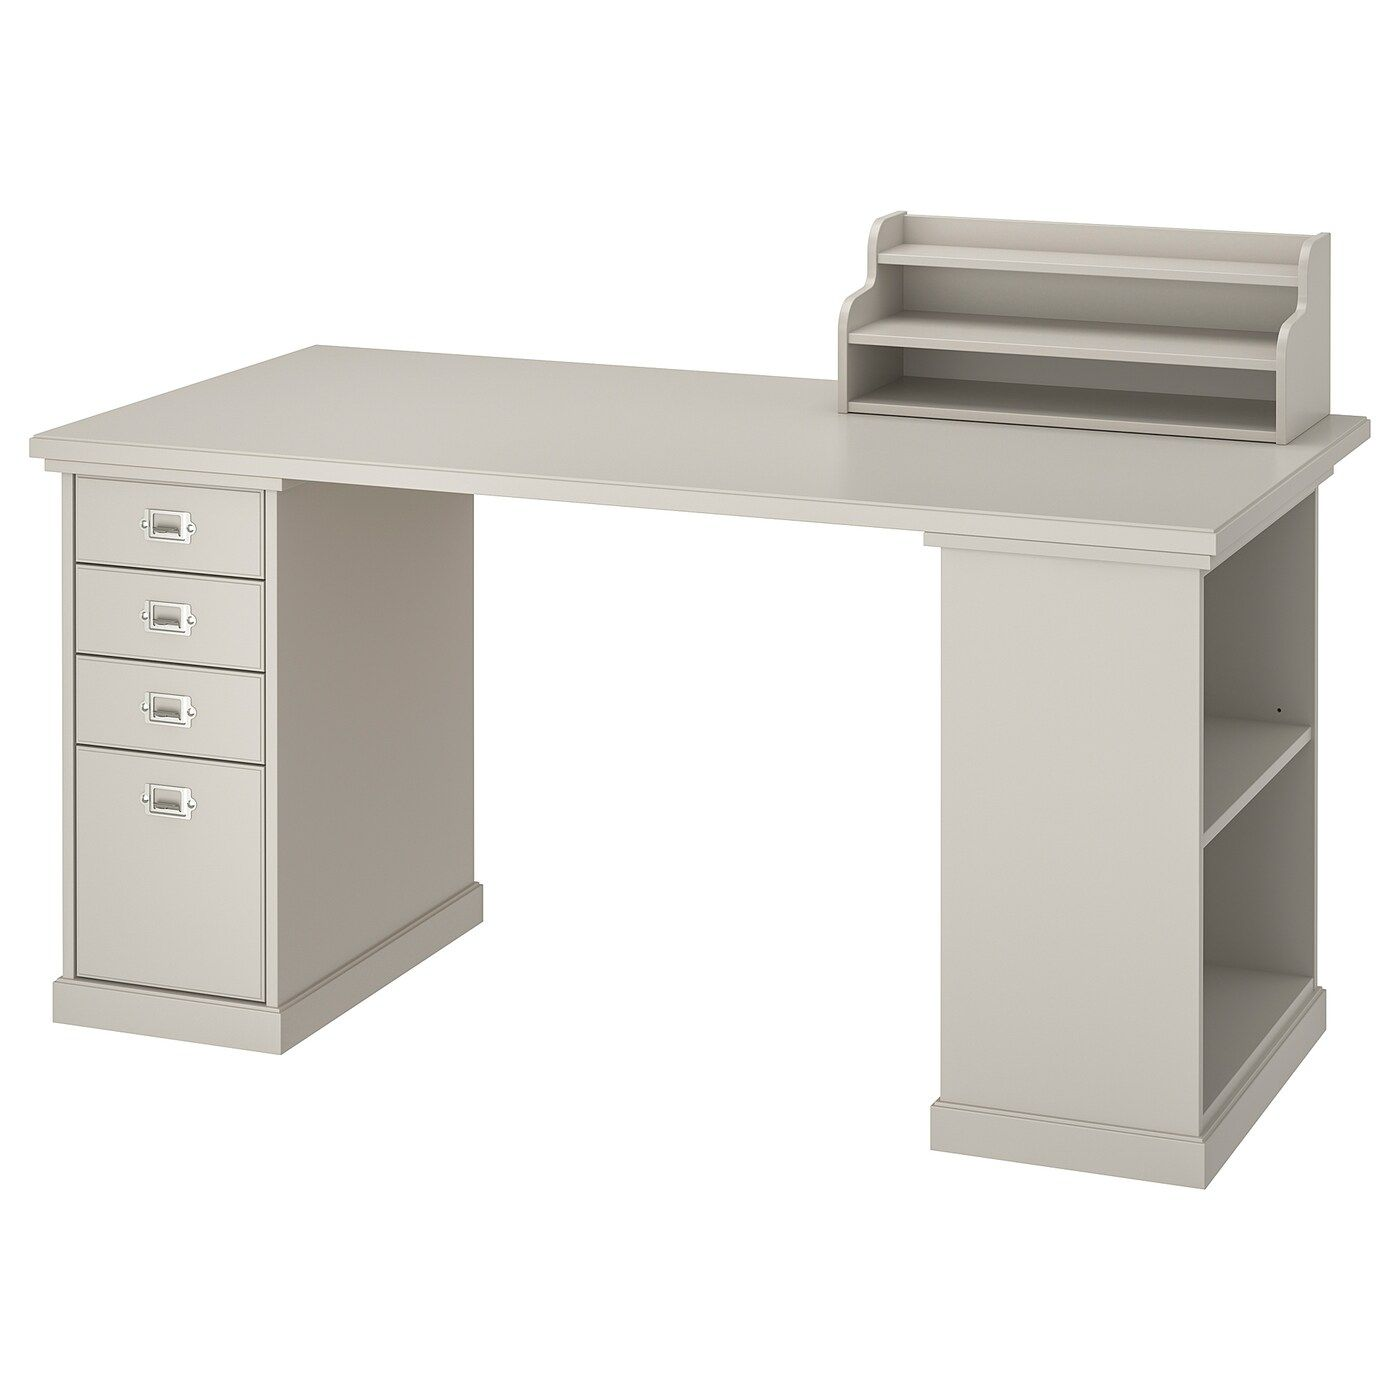 Kallax Workstation Black Brown 30 3 8x57 7 8x62 5 8 Order Here Ikea In 2020 Ikea Painted Drawers Drawer Unit